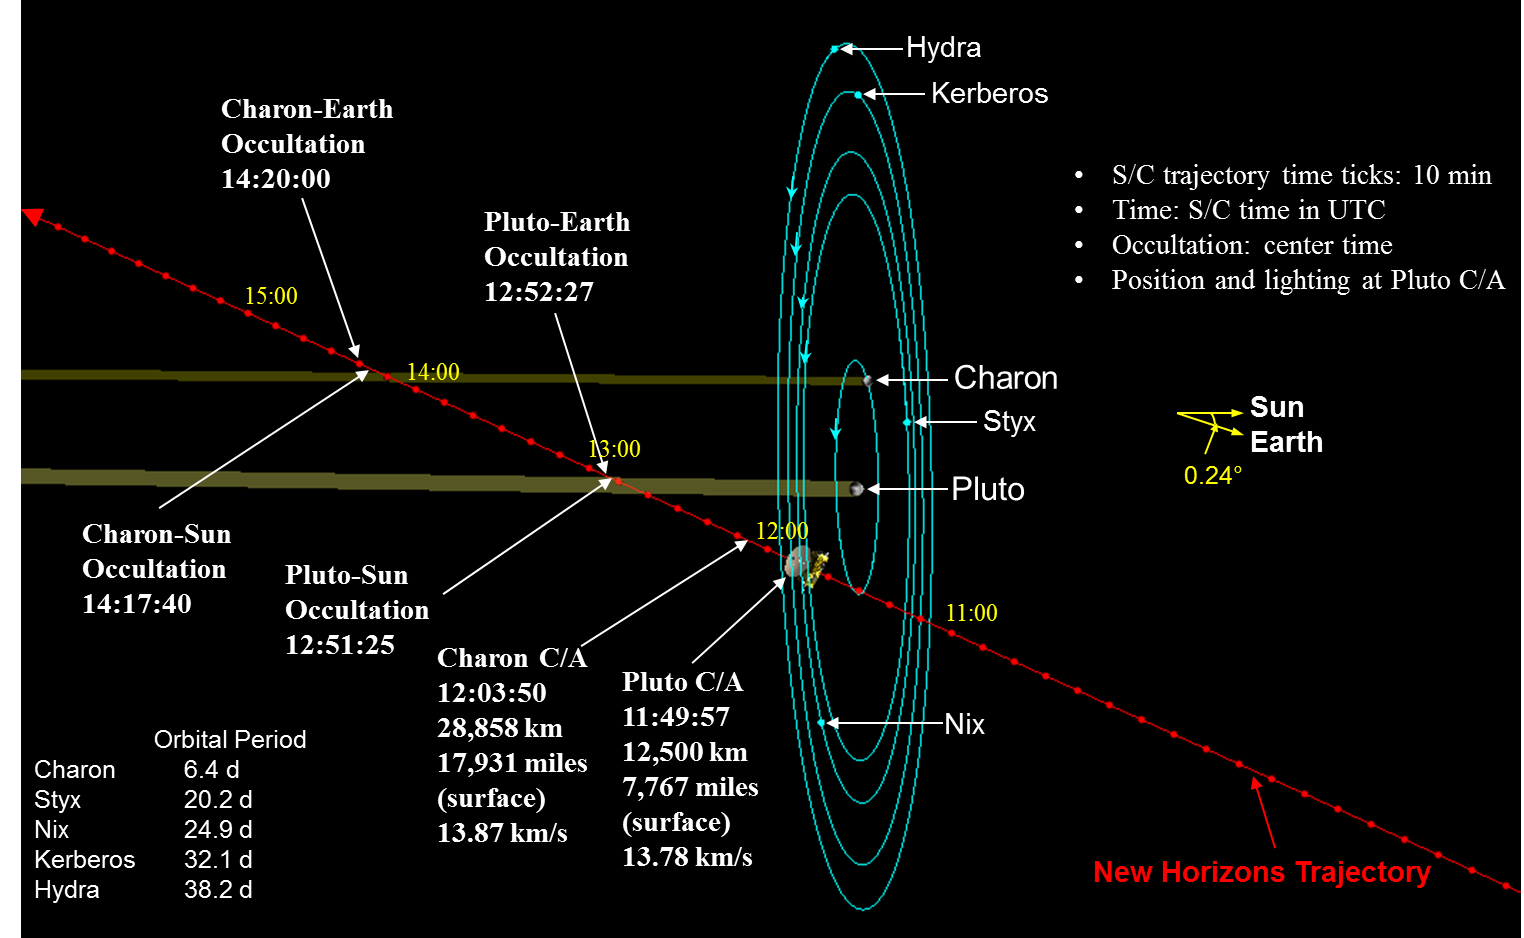 Kerberos Moon Of Plluto: In The Shadows Of Pluto And Charon